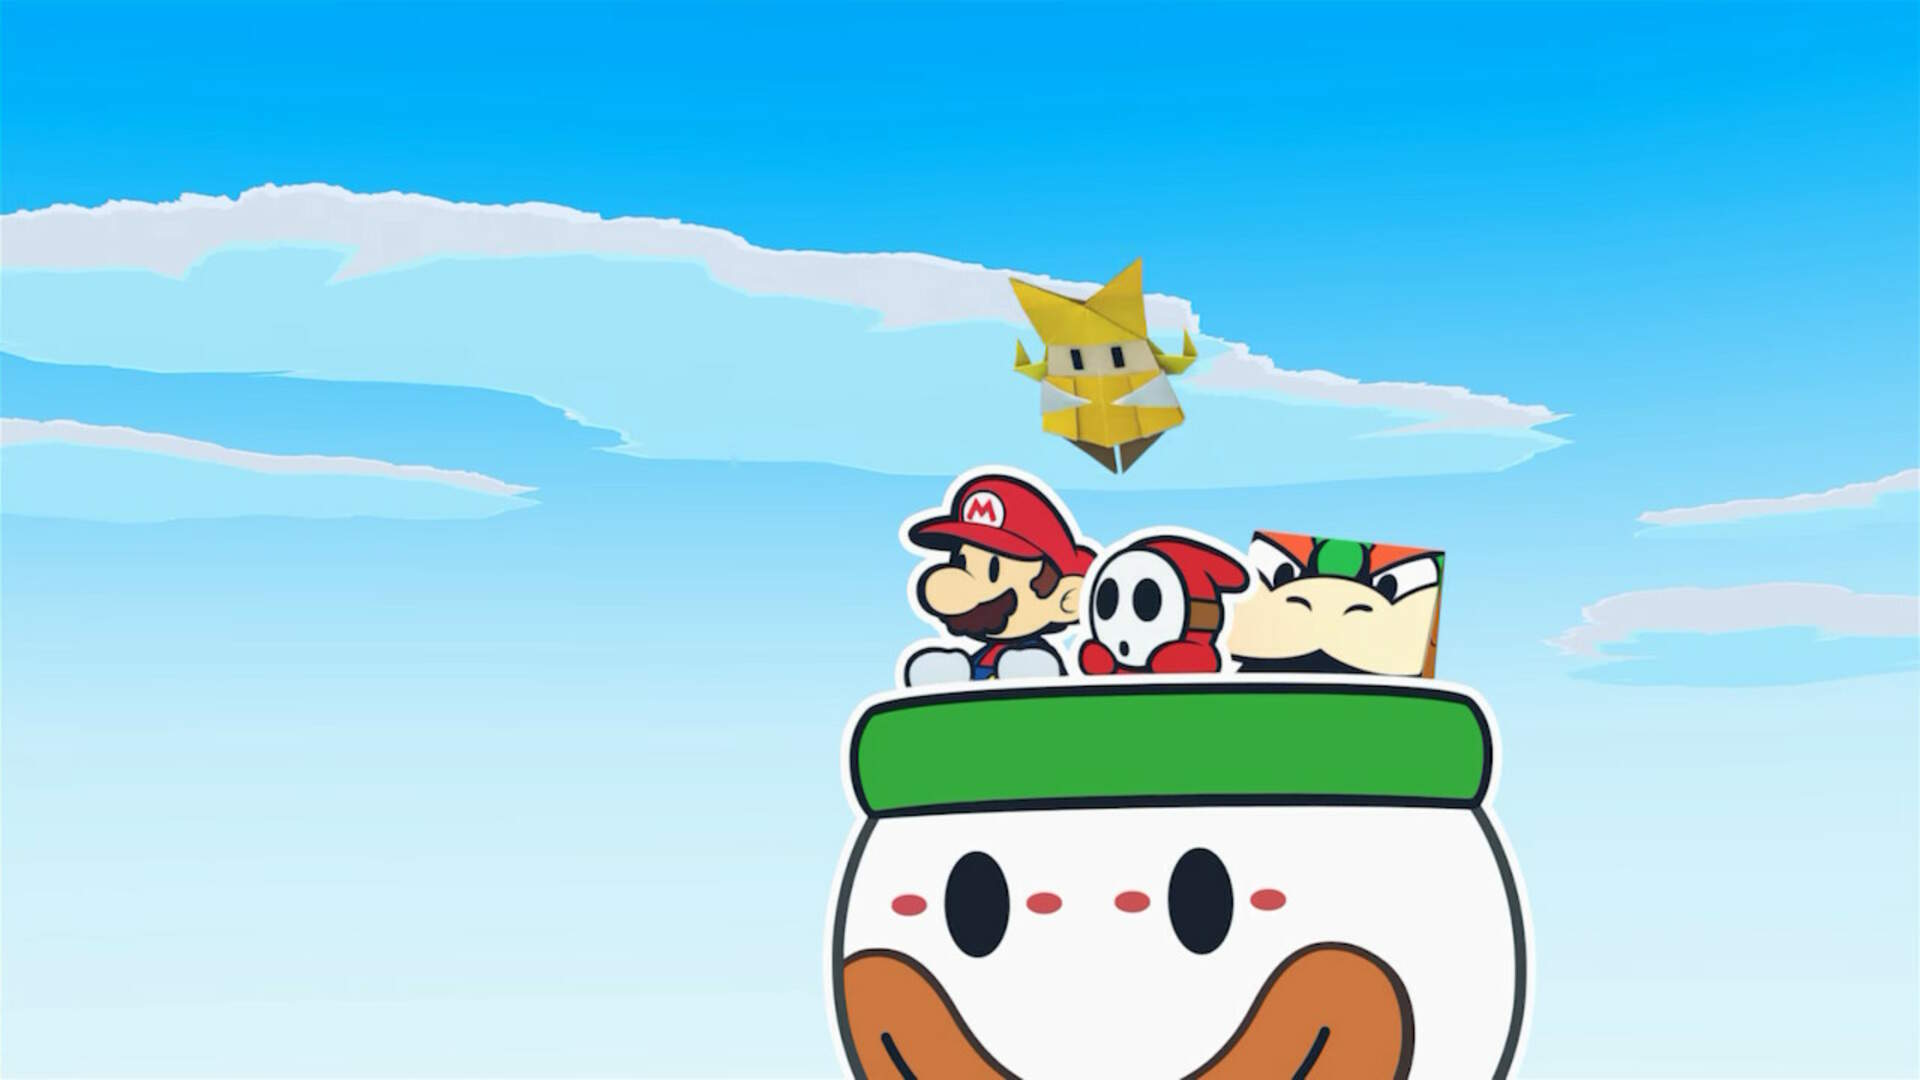 Paper Mario The Origami King: Should You Buy the Miracle Orb?